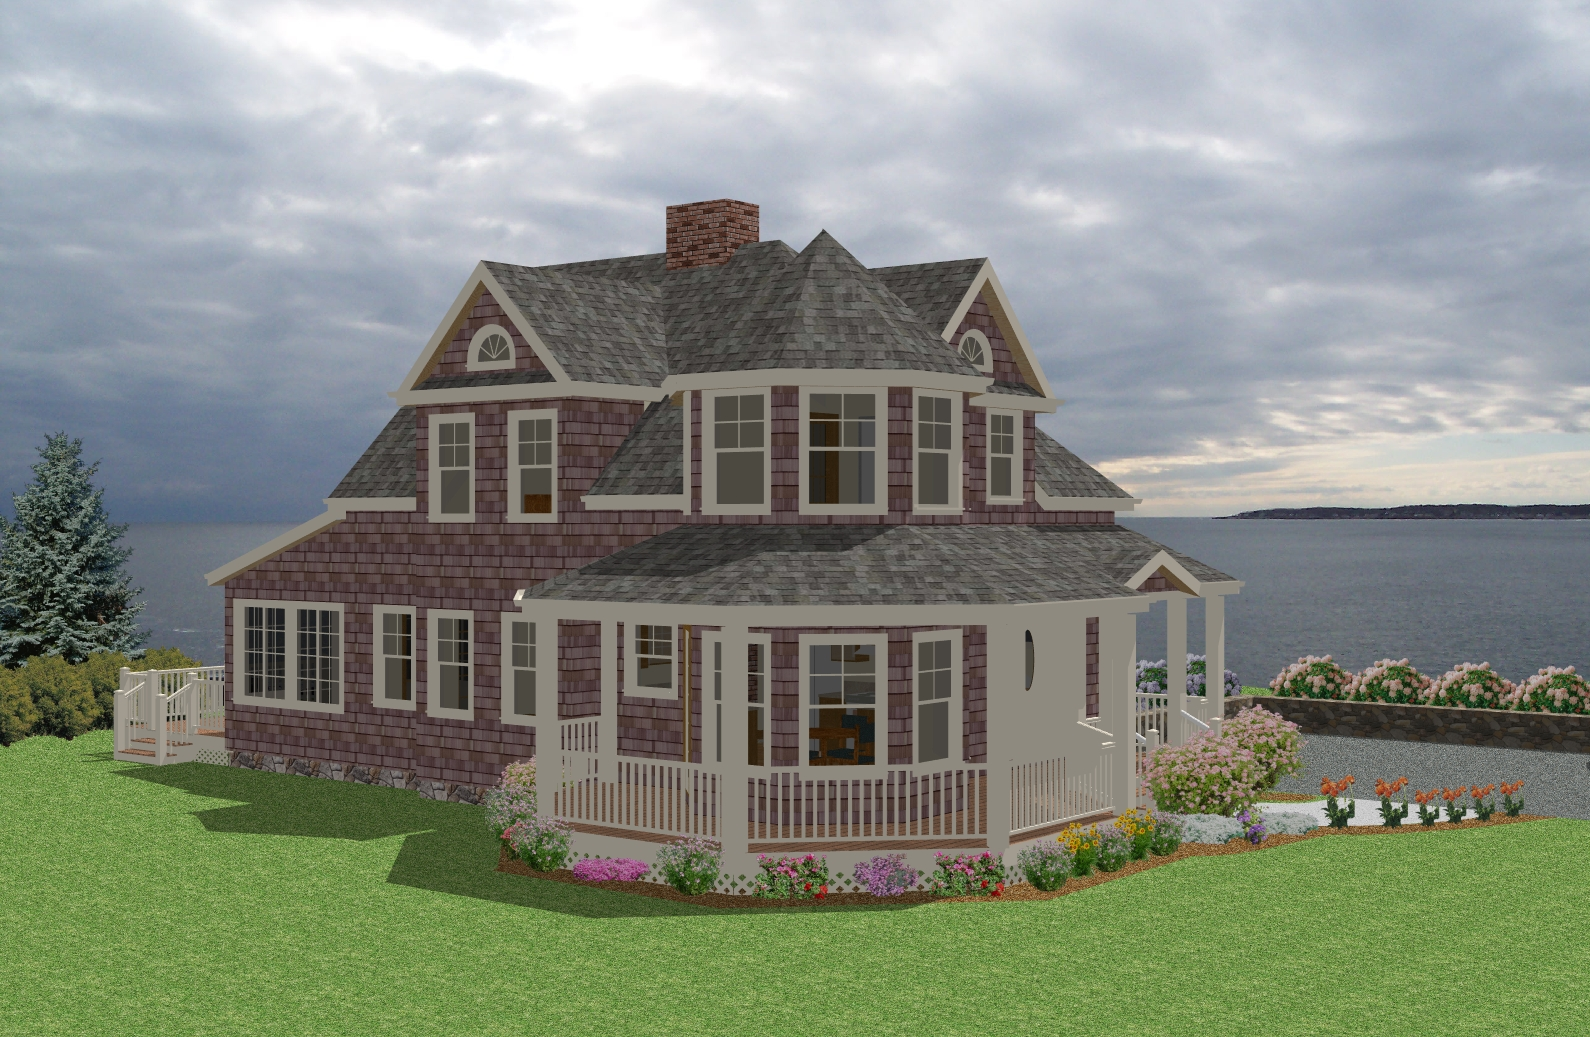 Home ideas new england coastal cottage plans Cottage home plans